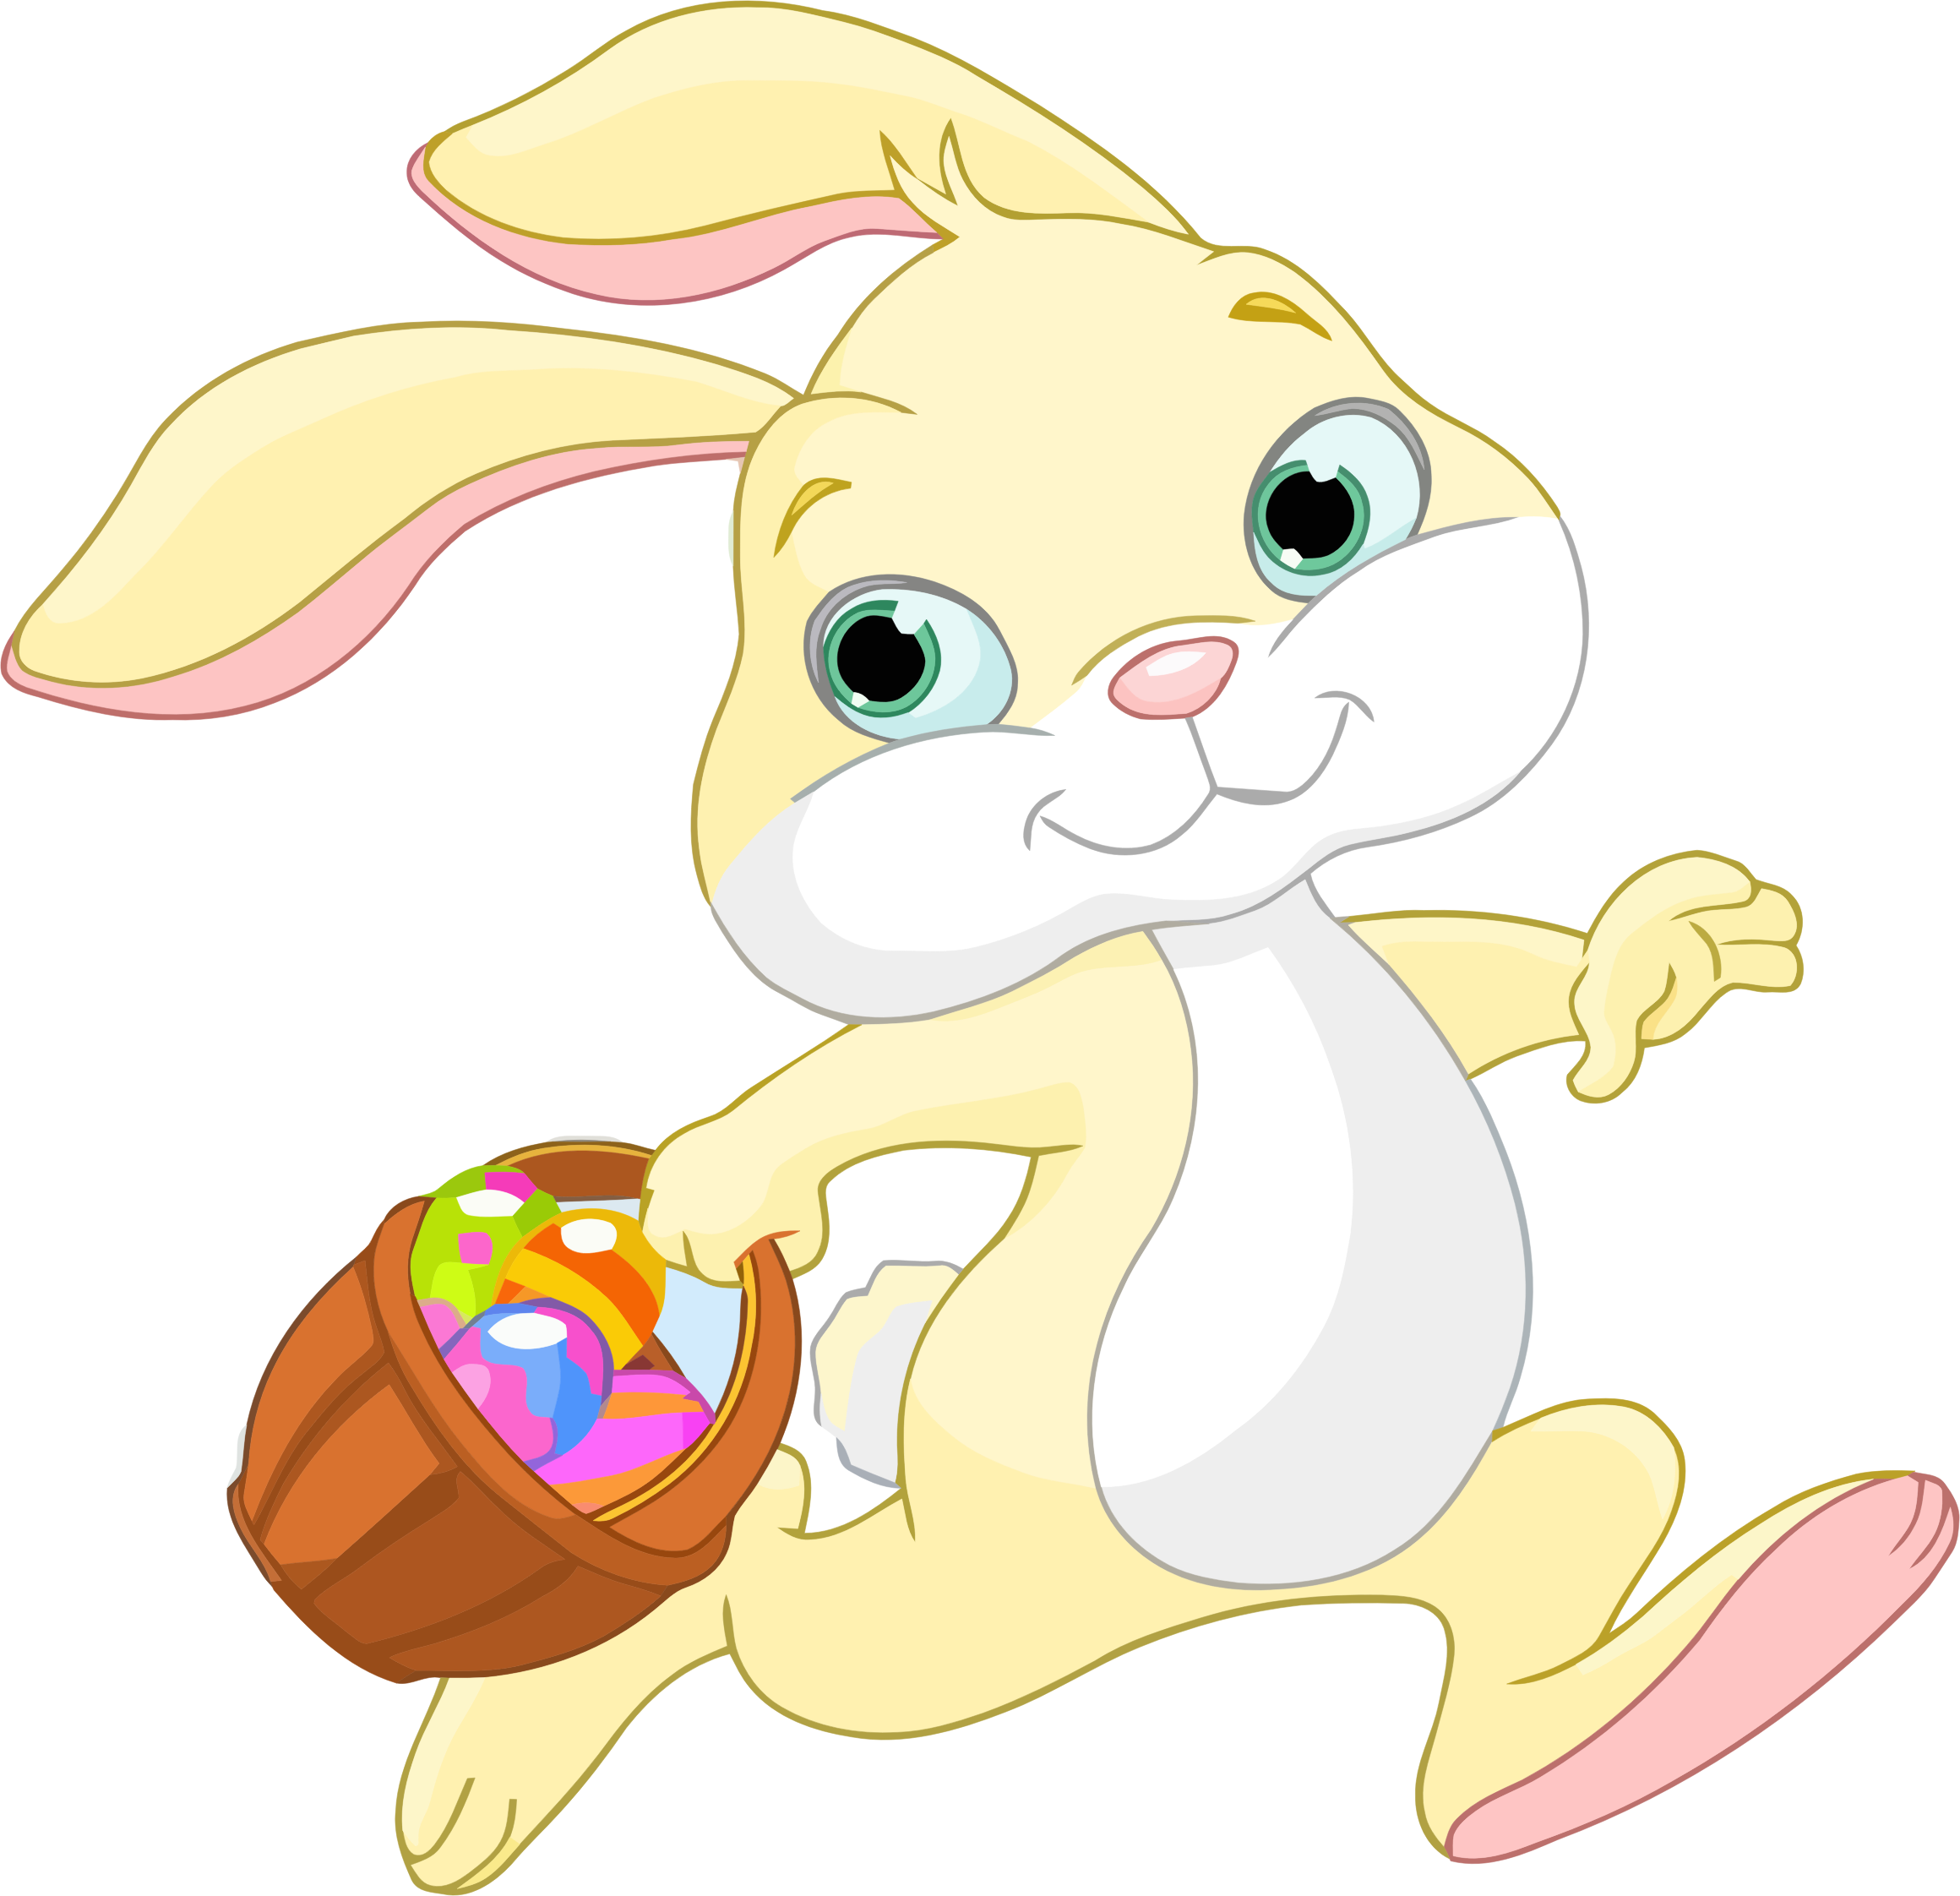 clipart stock Images happy quotes wishes. Easter clipart